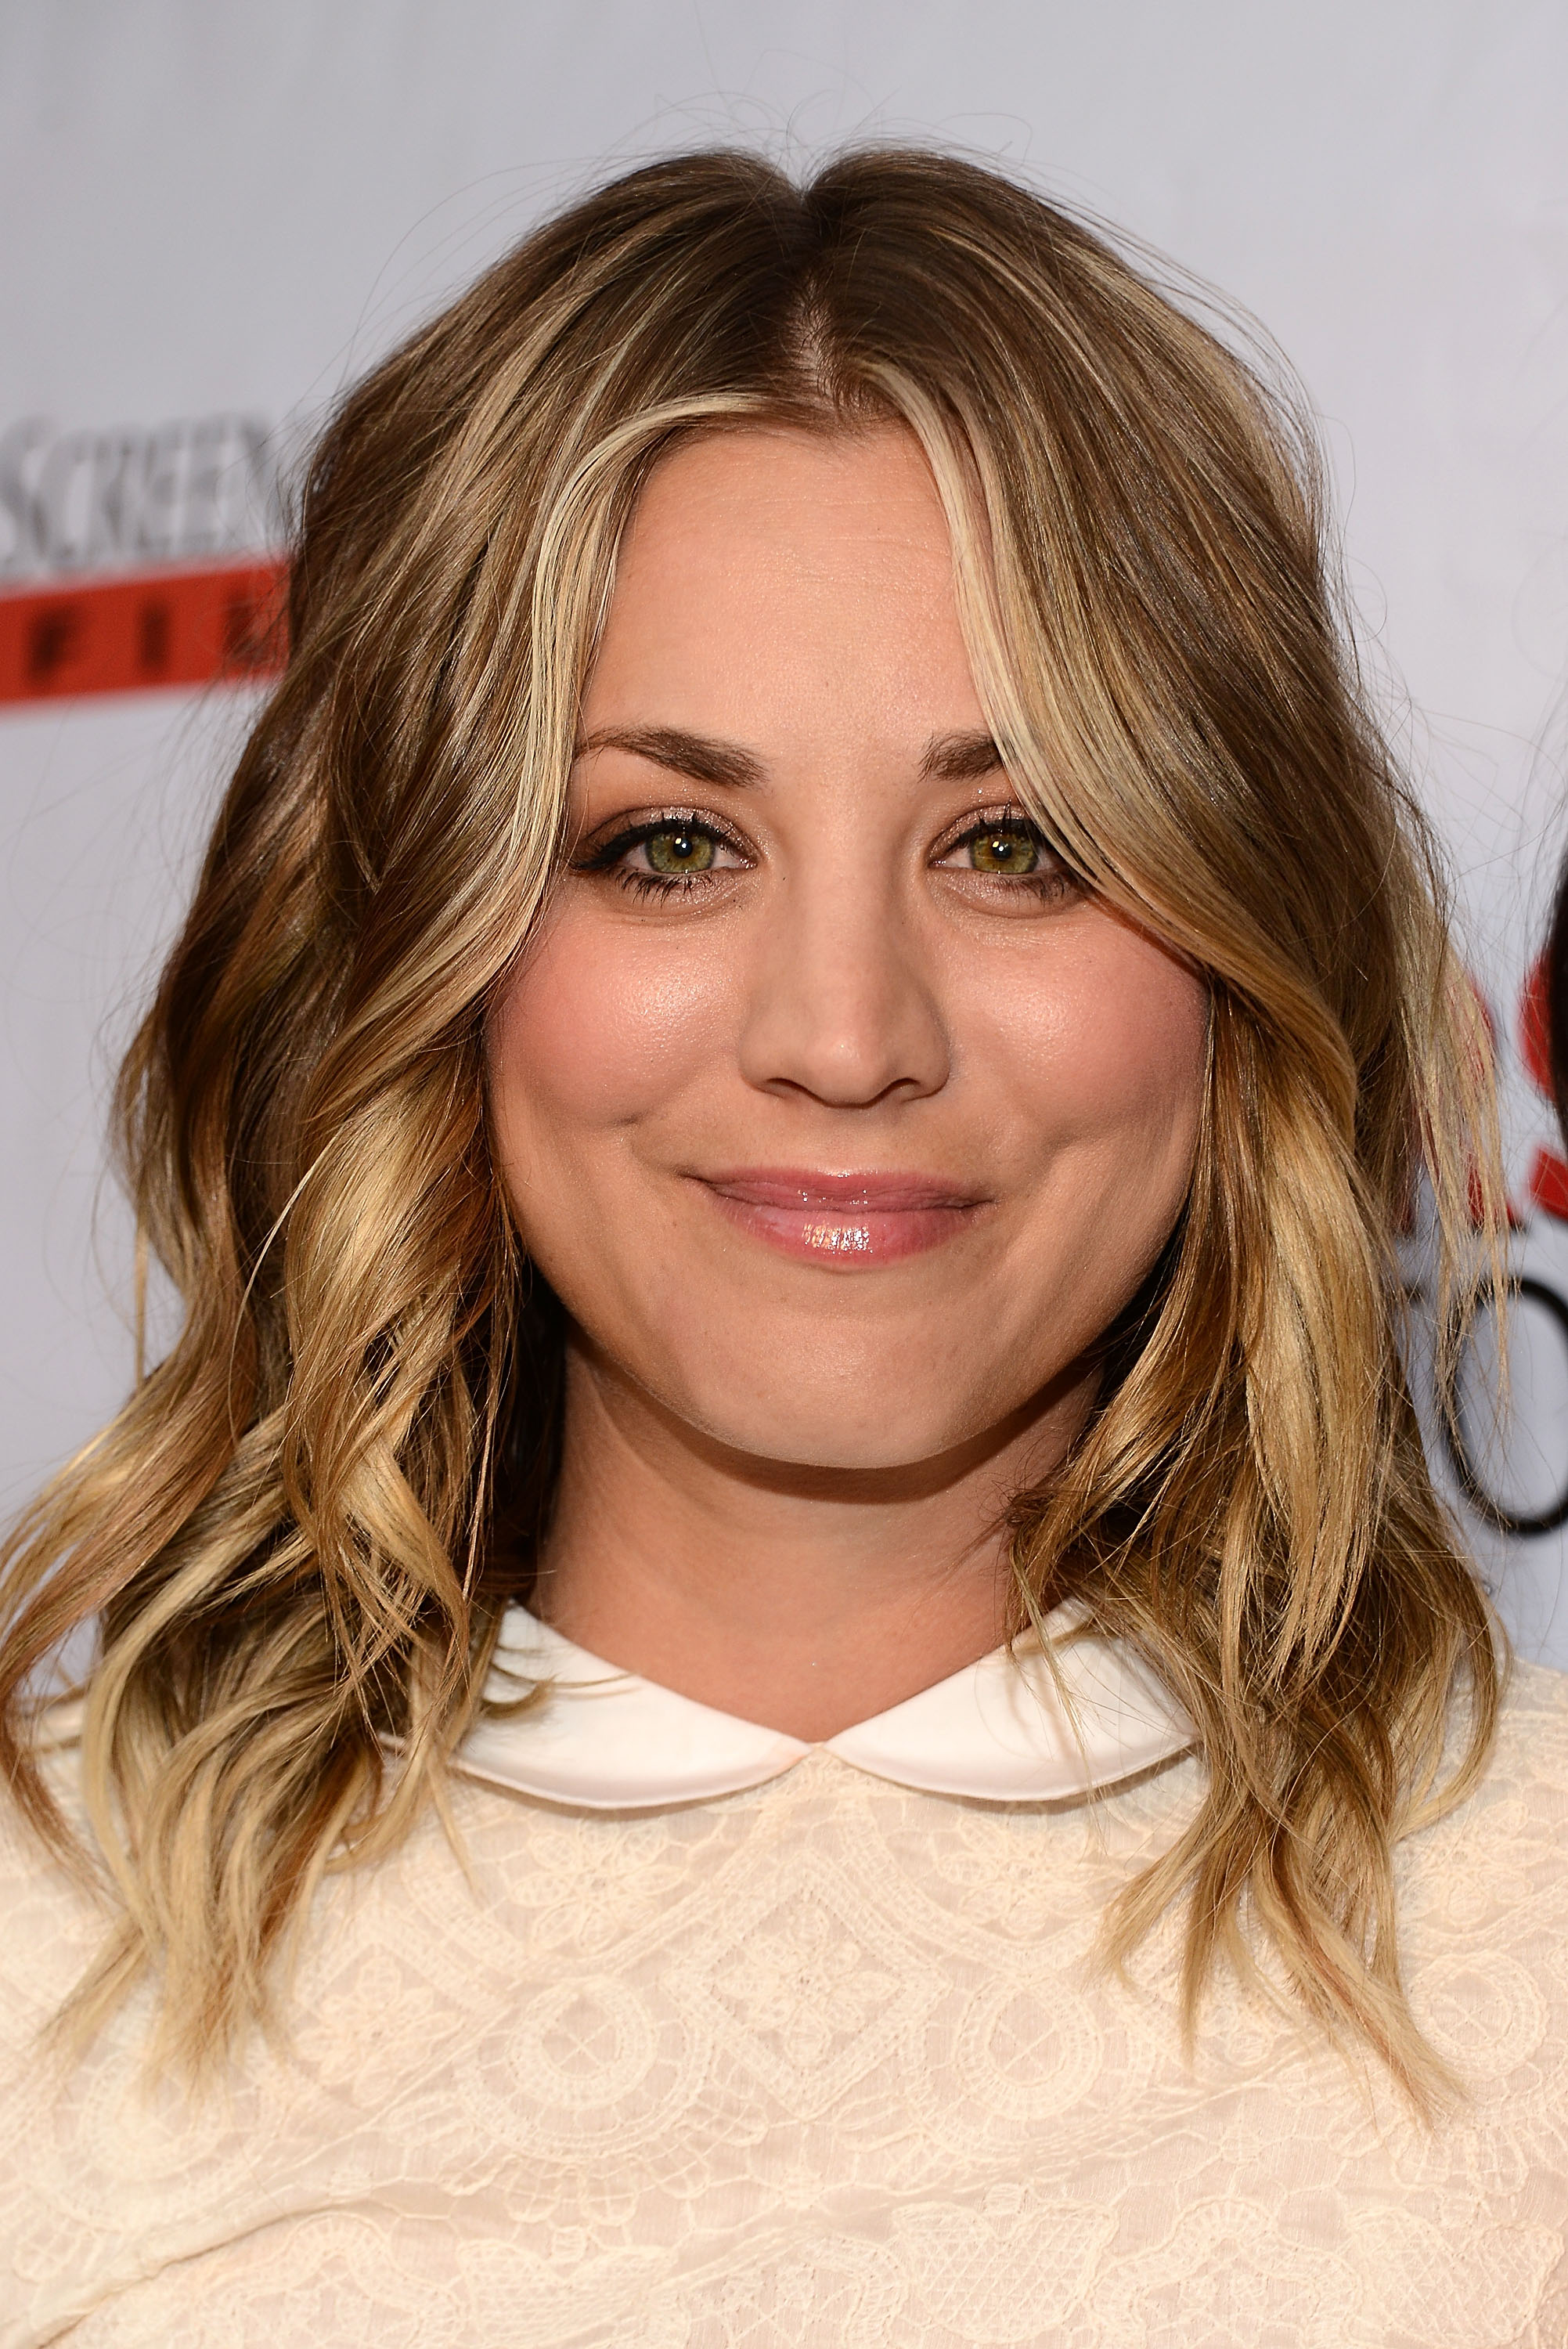 Kaley Cuoco Says She Isnt A Feminist Because She Loves Being A